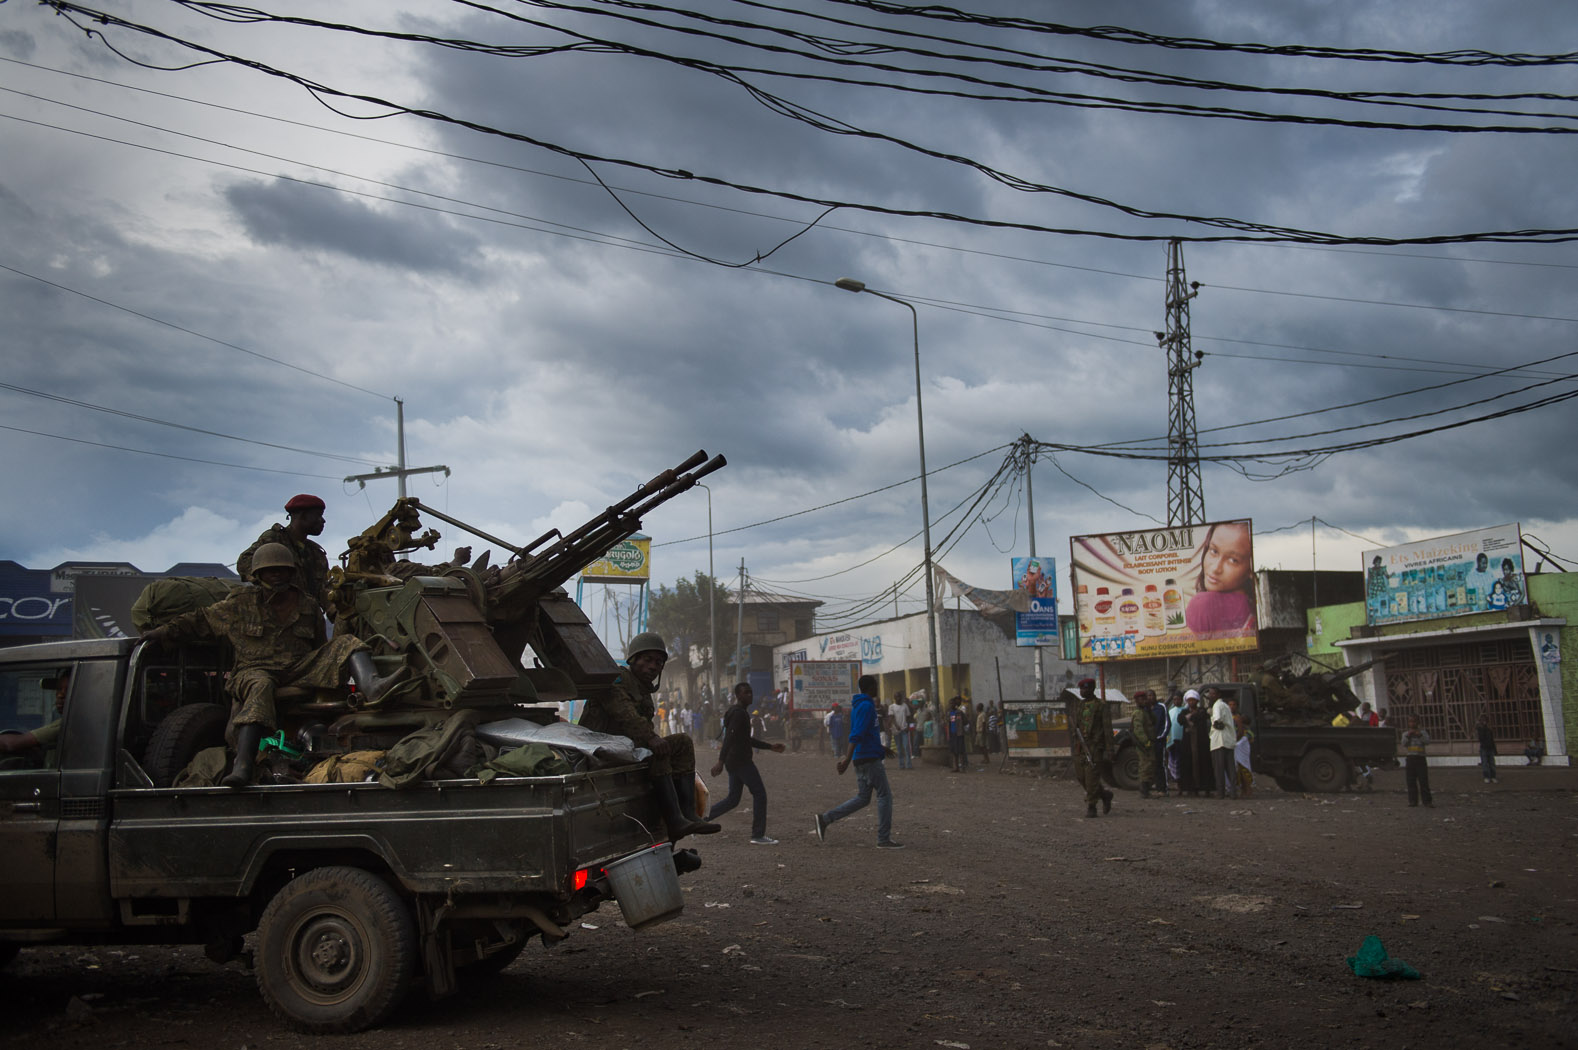 But as rebels overran army positions and approached Goma, the FARDC were pushed back to the city as their last line of defence, resulting in gun battles in the city.